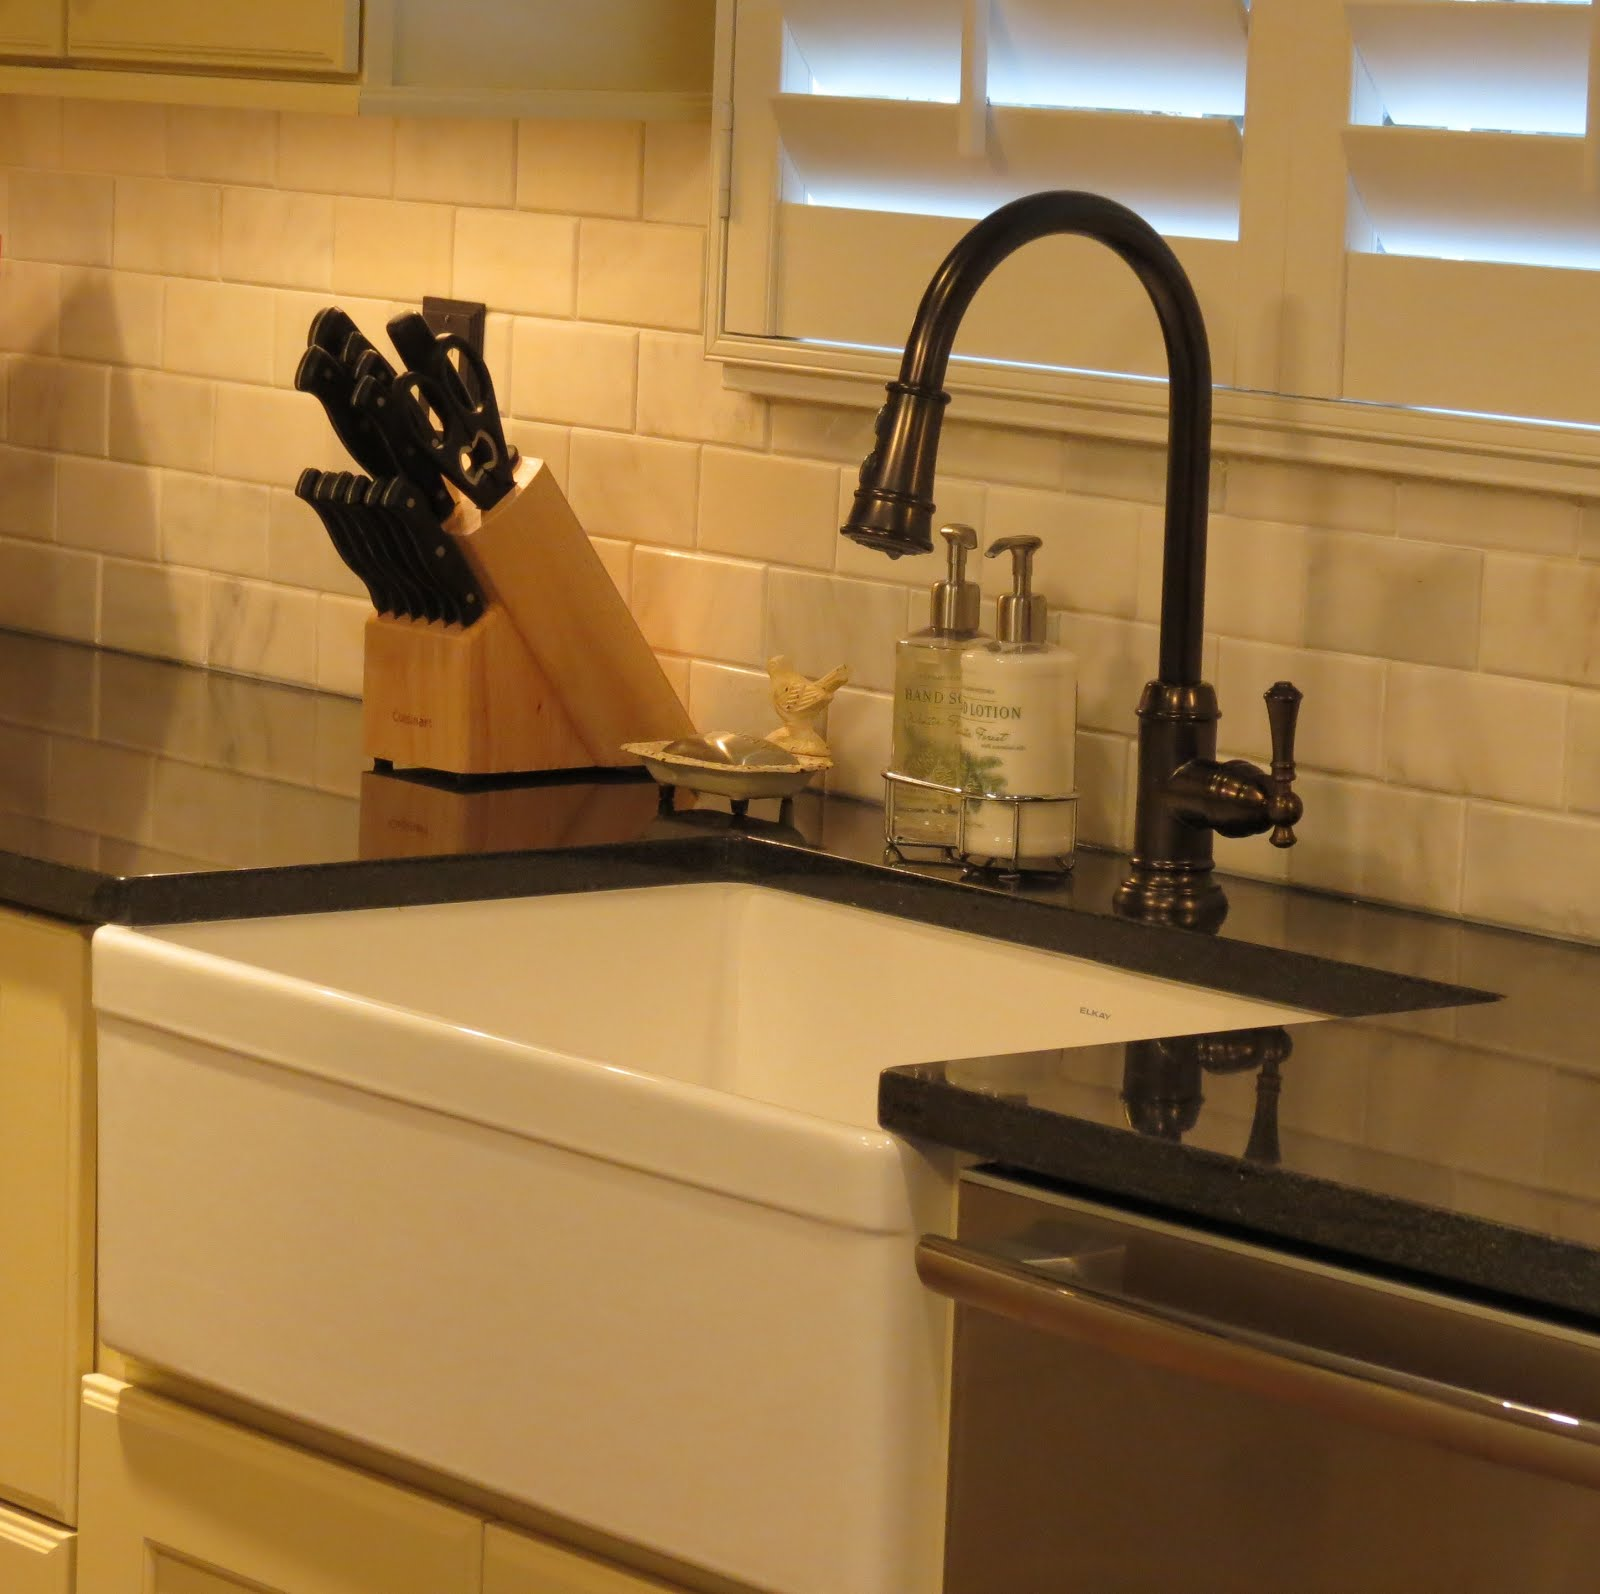 Black Stainless Steel Backsplash and Granite Countertops